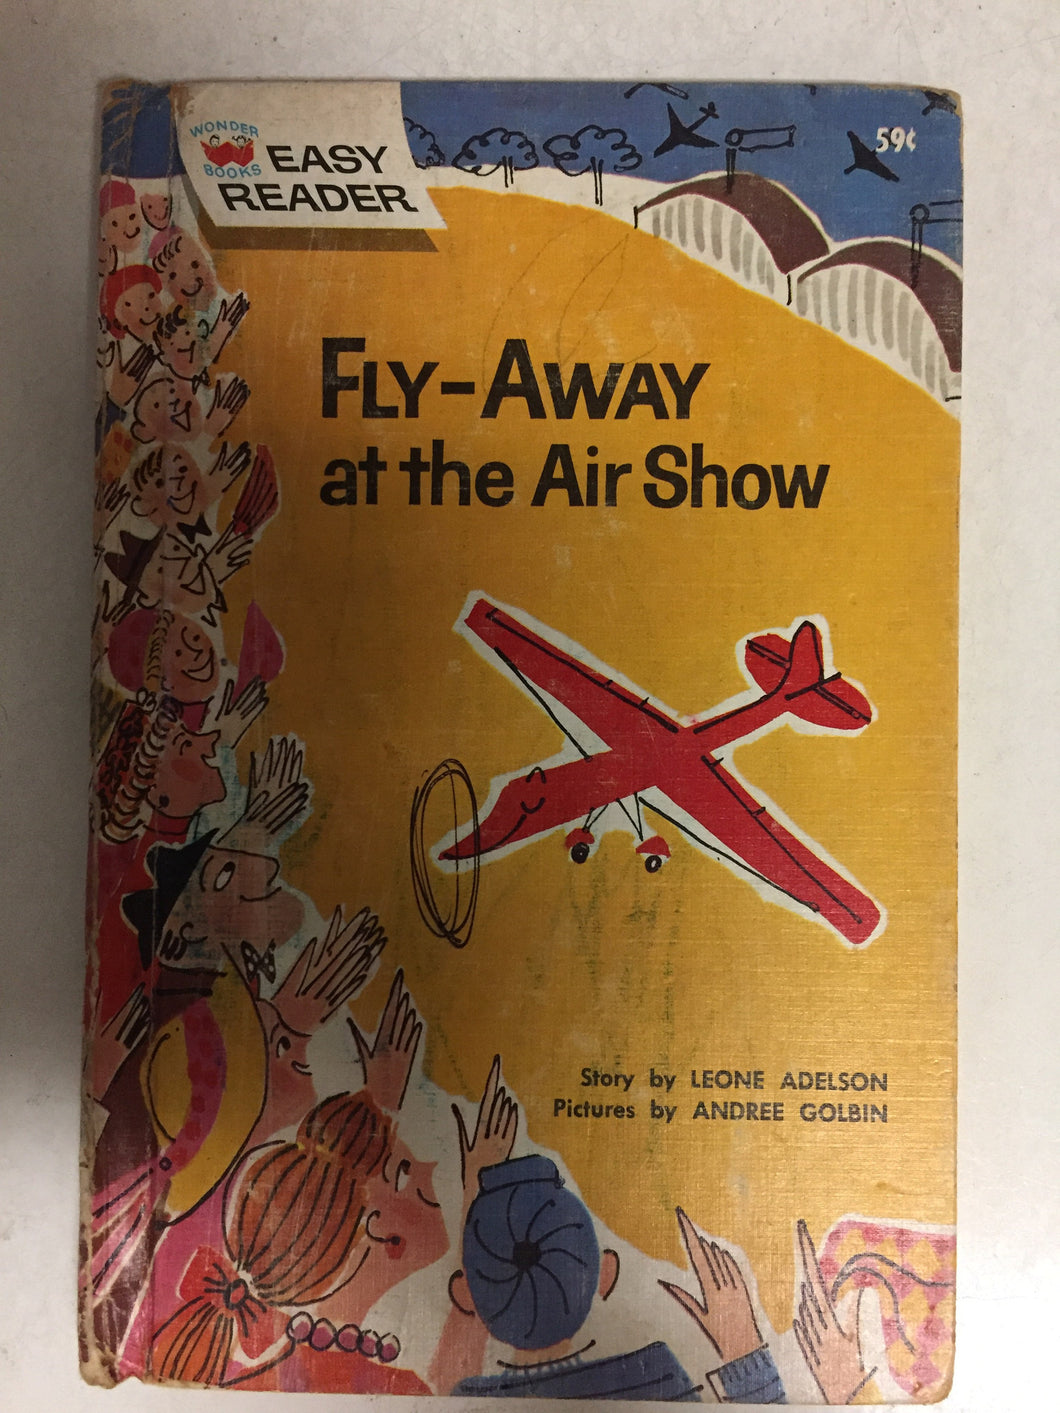 Fly-Away at the Air Show - Slickcatbooks